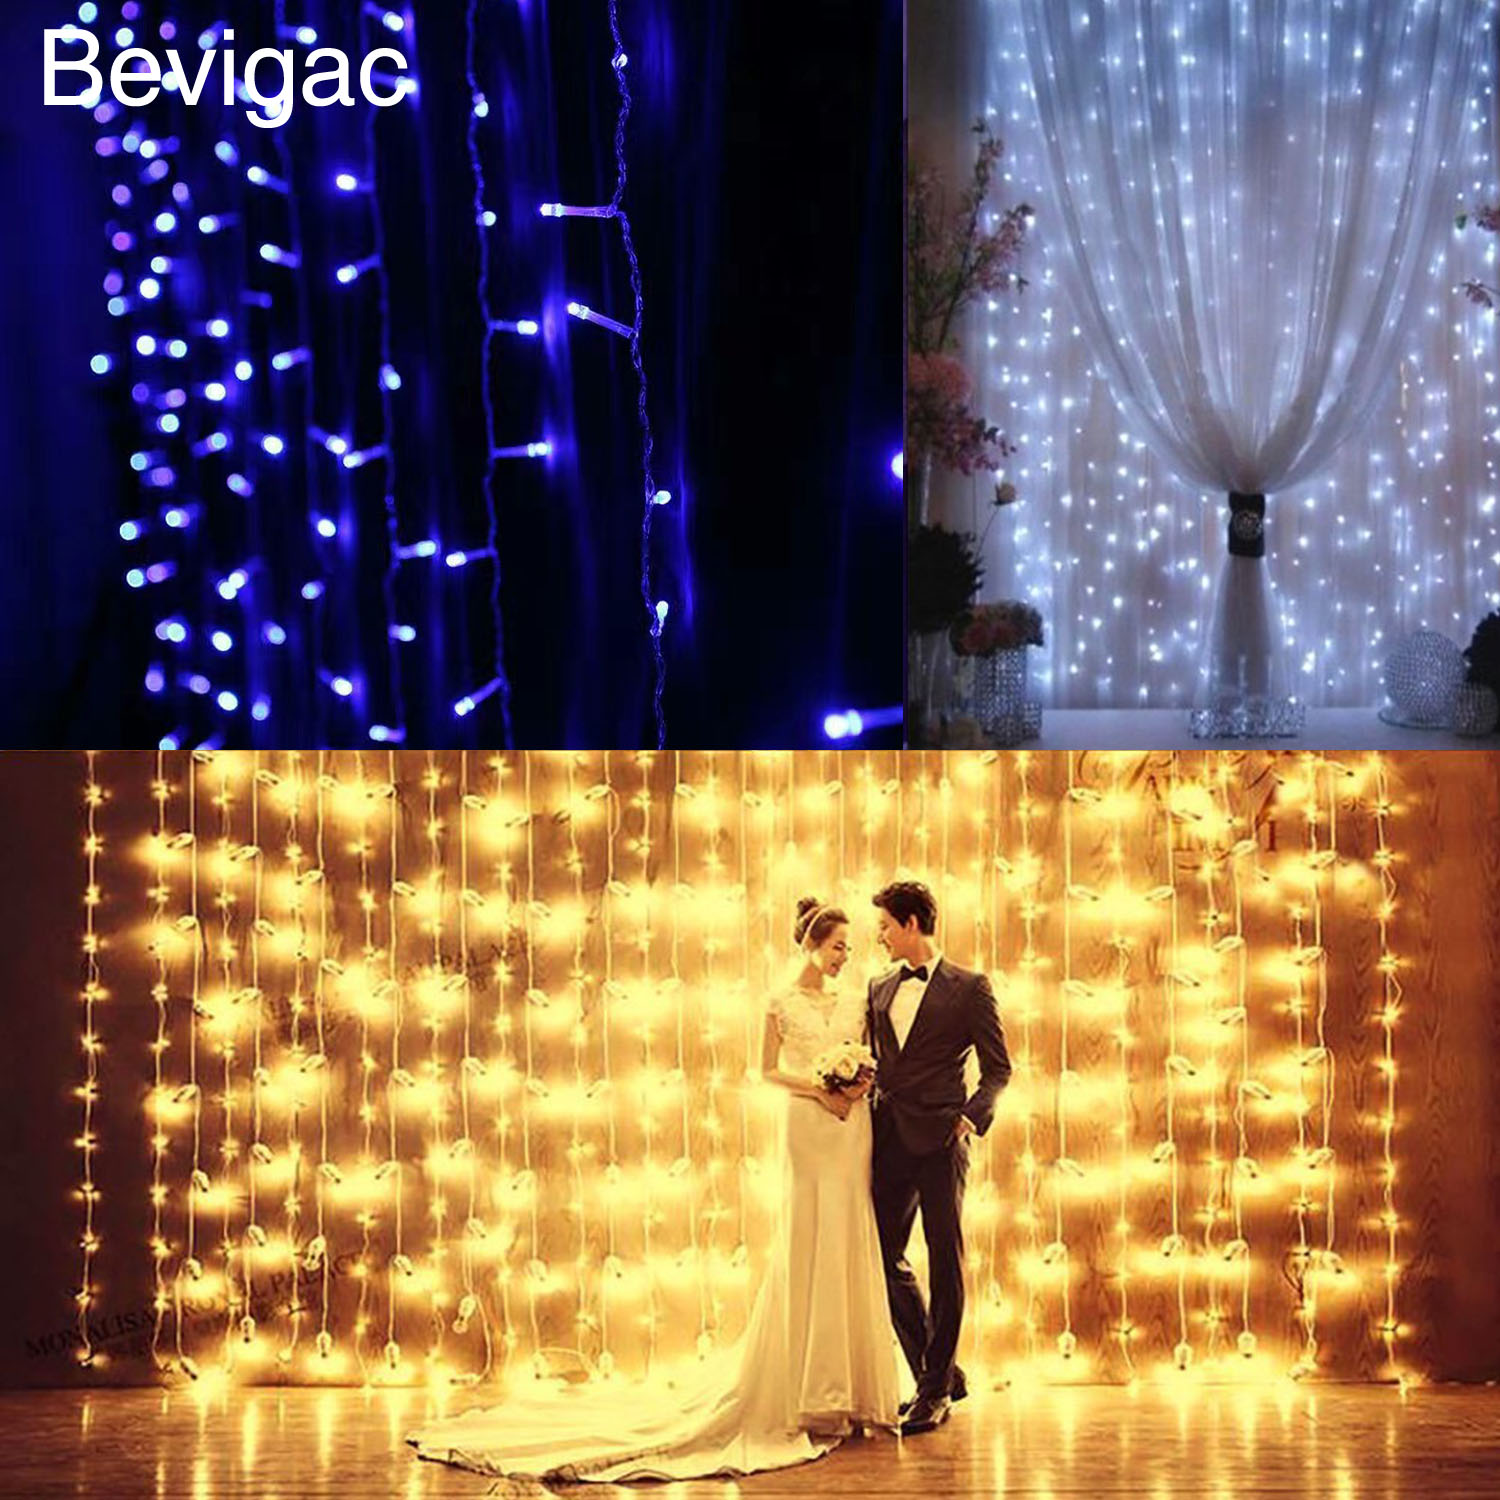 Bevigac 3x3m Fantastic Wall Window String Curtain LED Light Decoration for Christmas Halloween Wedding Outdoor Party Home Decor